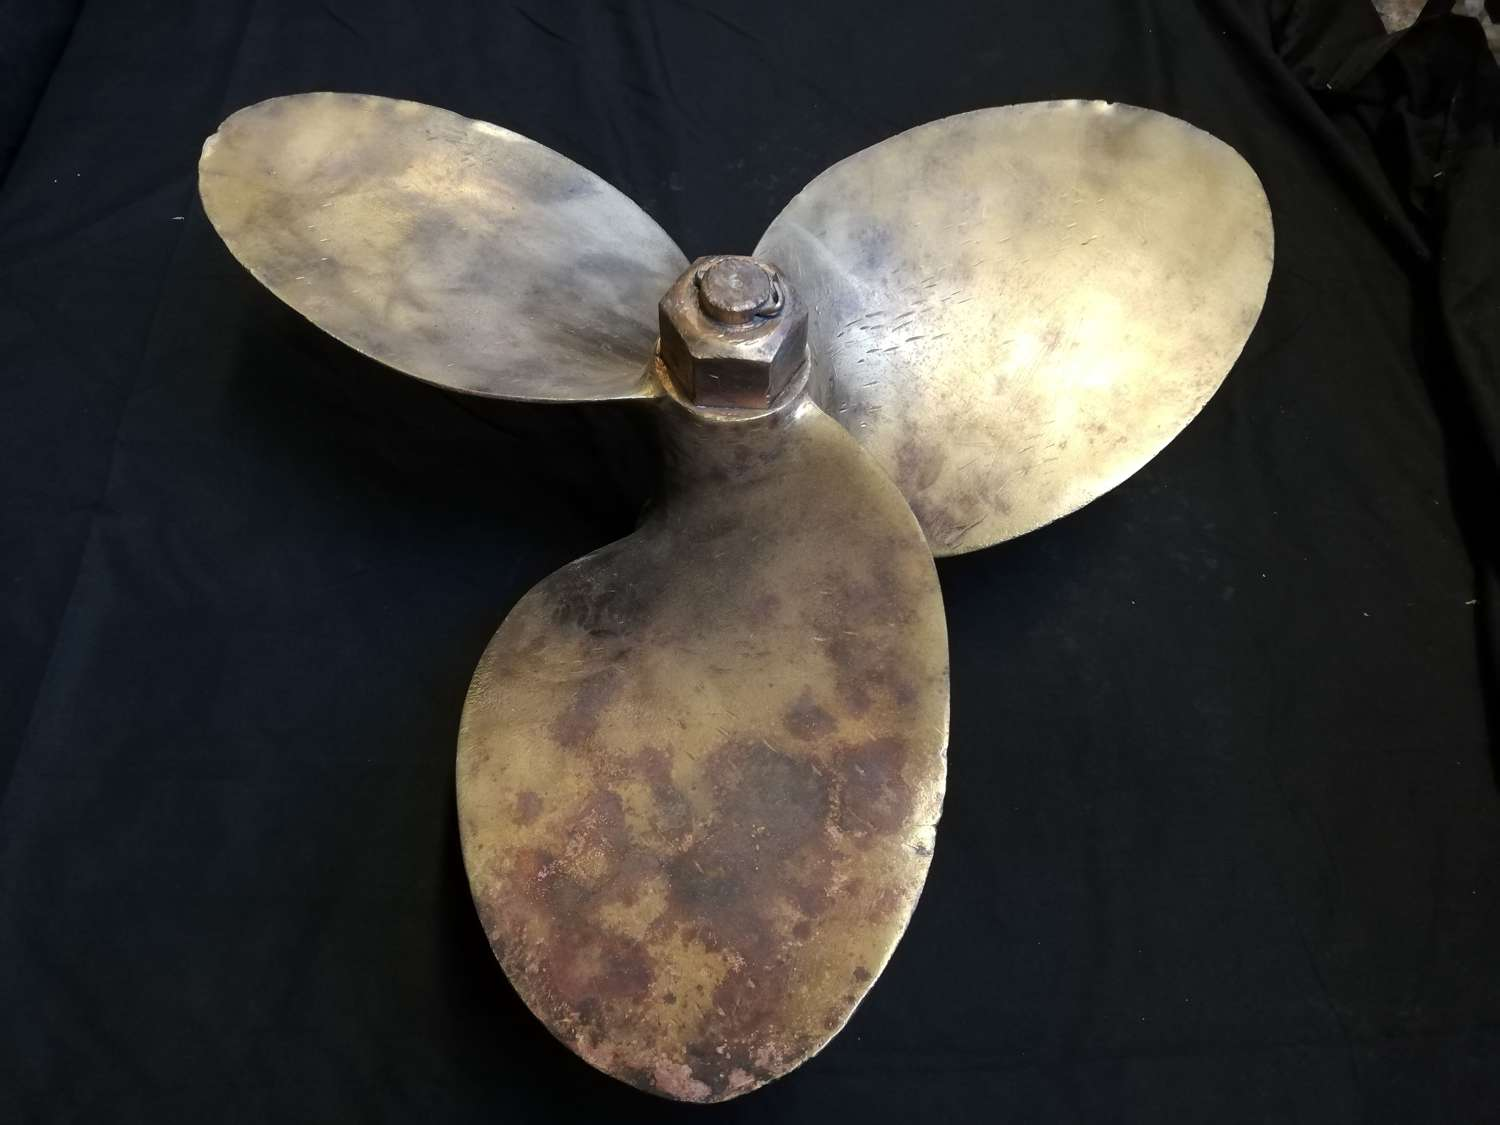 M1316 HEAVY BRONZE ANTIQUE SHIPS PROPELLER DECORATIVE DISPLAY ITEM